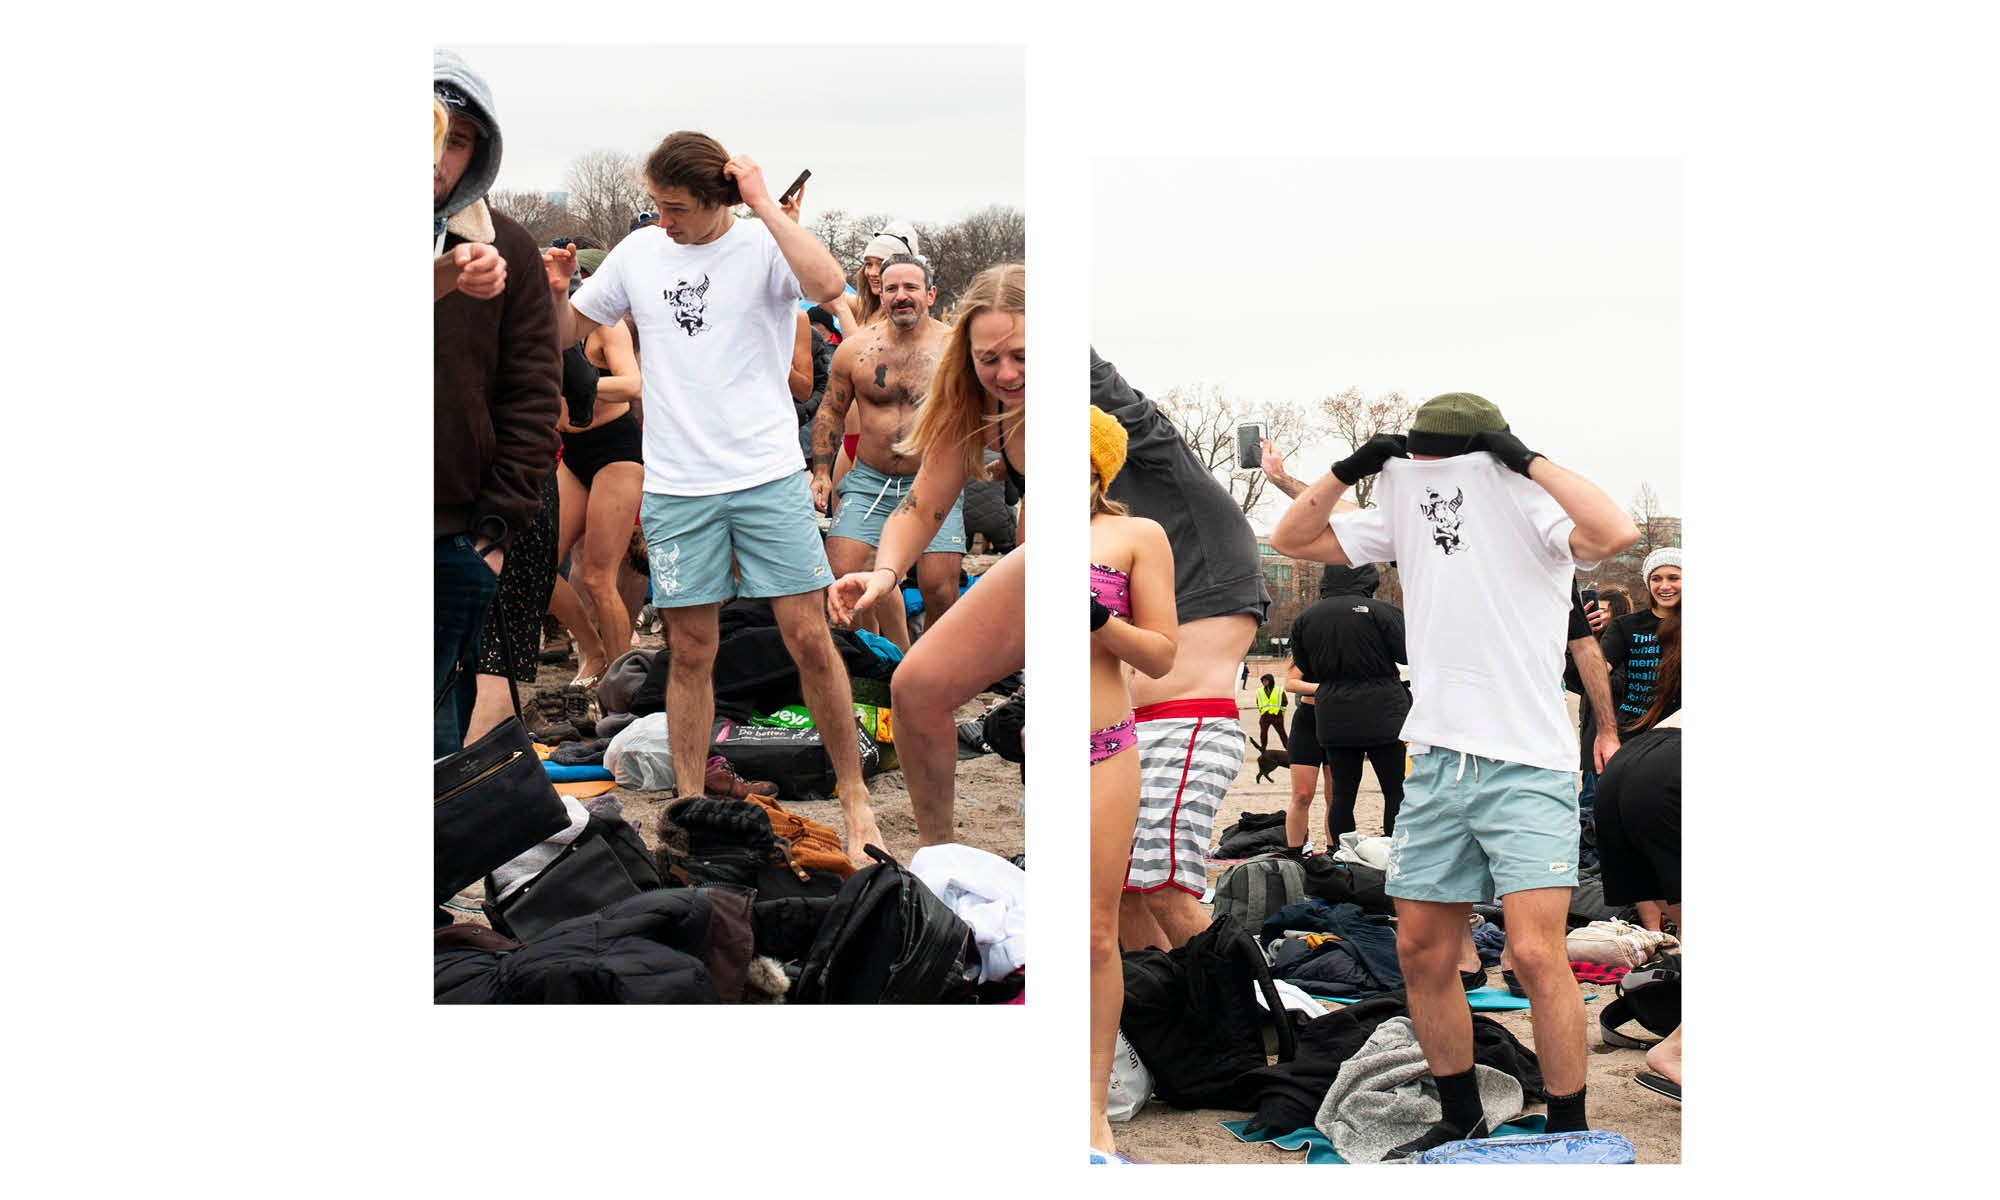 Bather t-shirt and swim trunks for the Polar Bear Dip